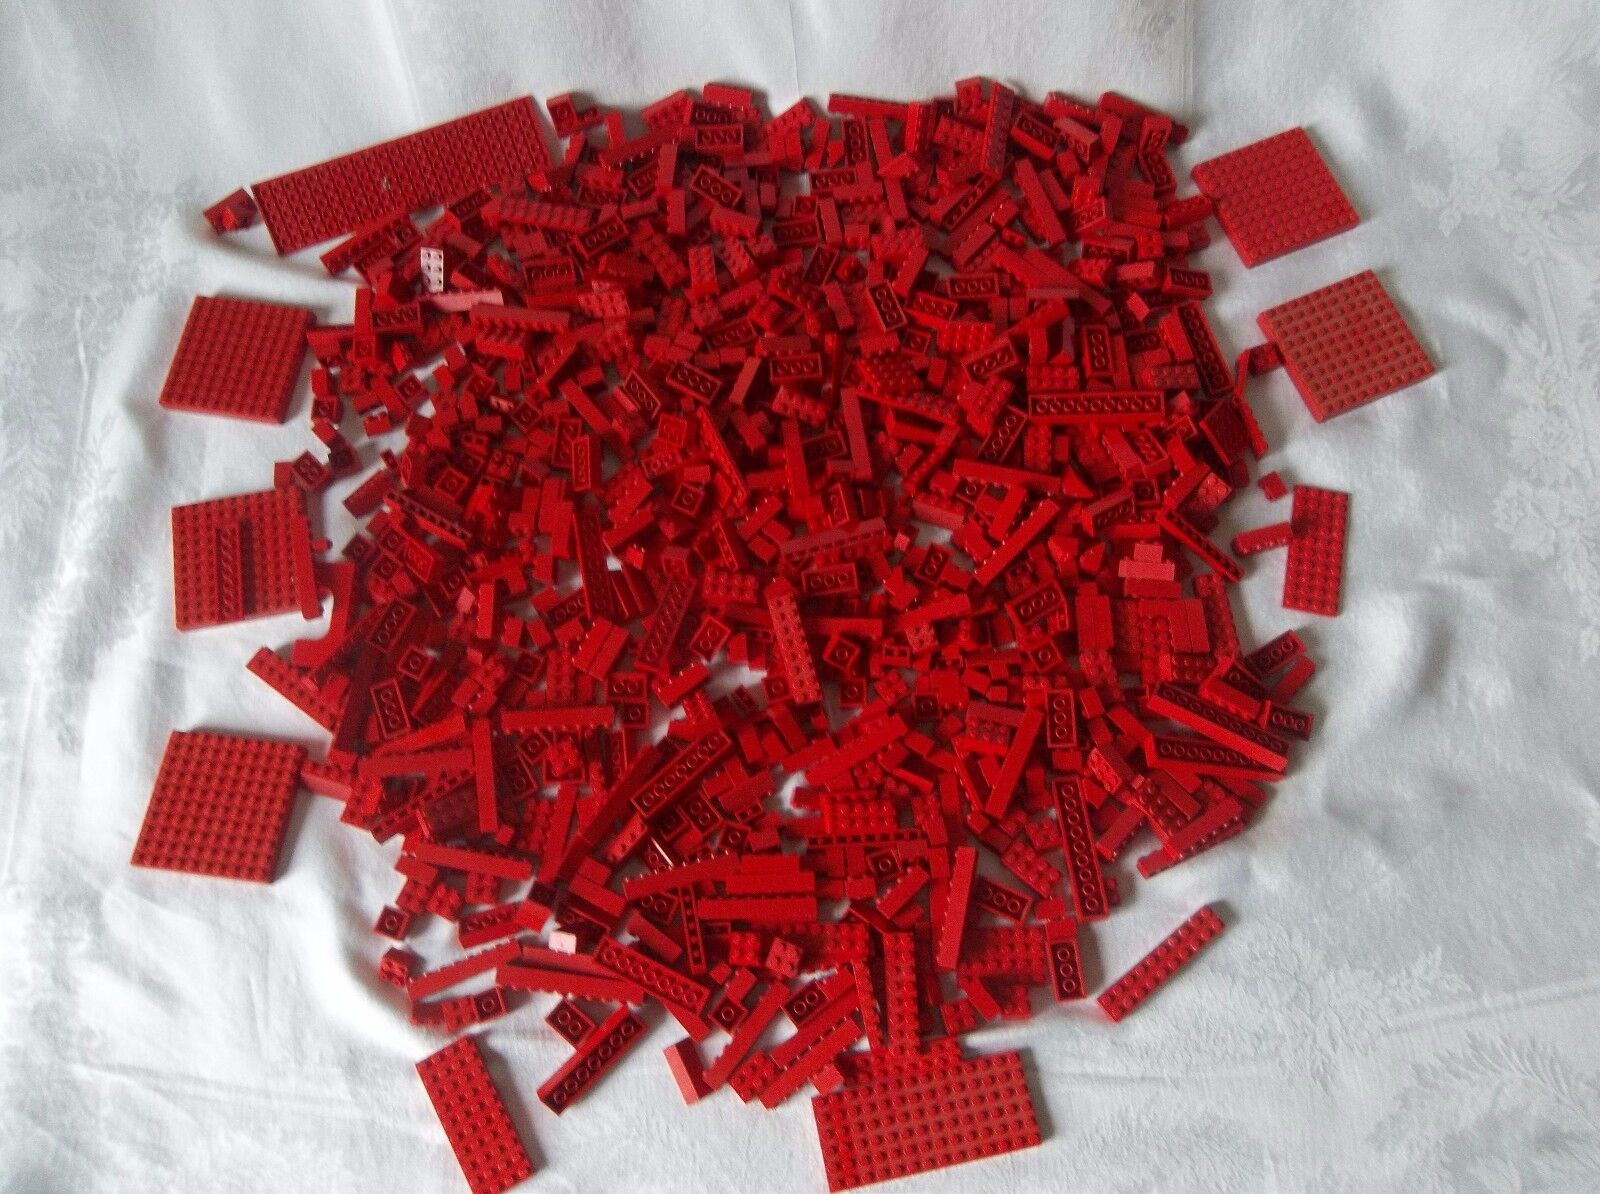 Vintage Legos  Red 950 Pieces Assorted Sizes and Pieces All Red